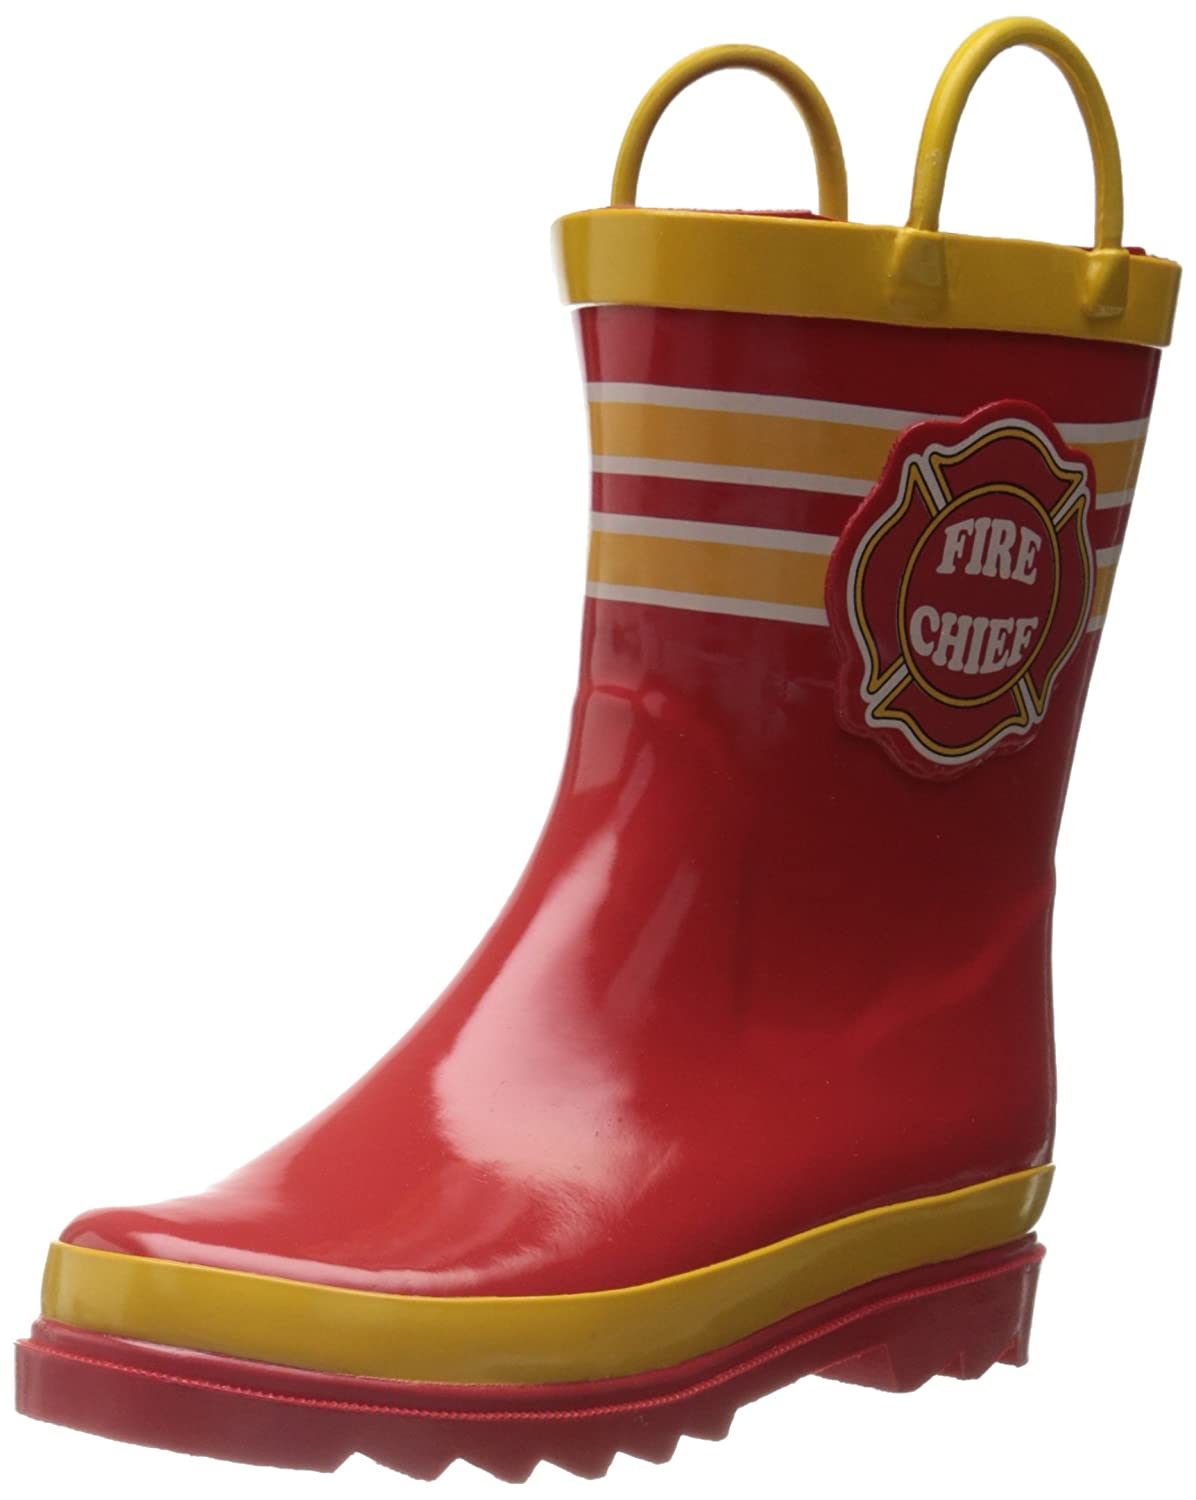 Puddle Play Kids Boys' Fire Chief Character Printed Waterproof Easy-On Rubber Rain Boots (Toddler/Little Kids)